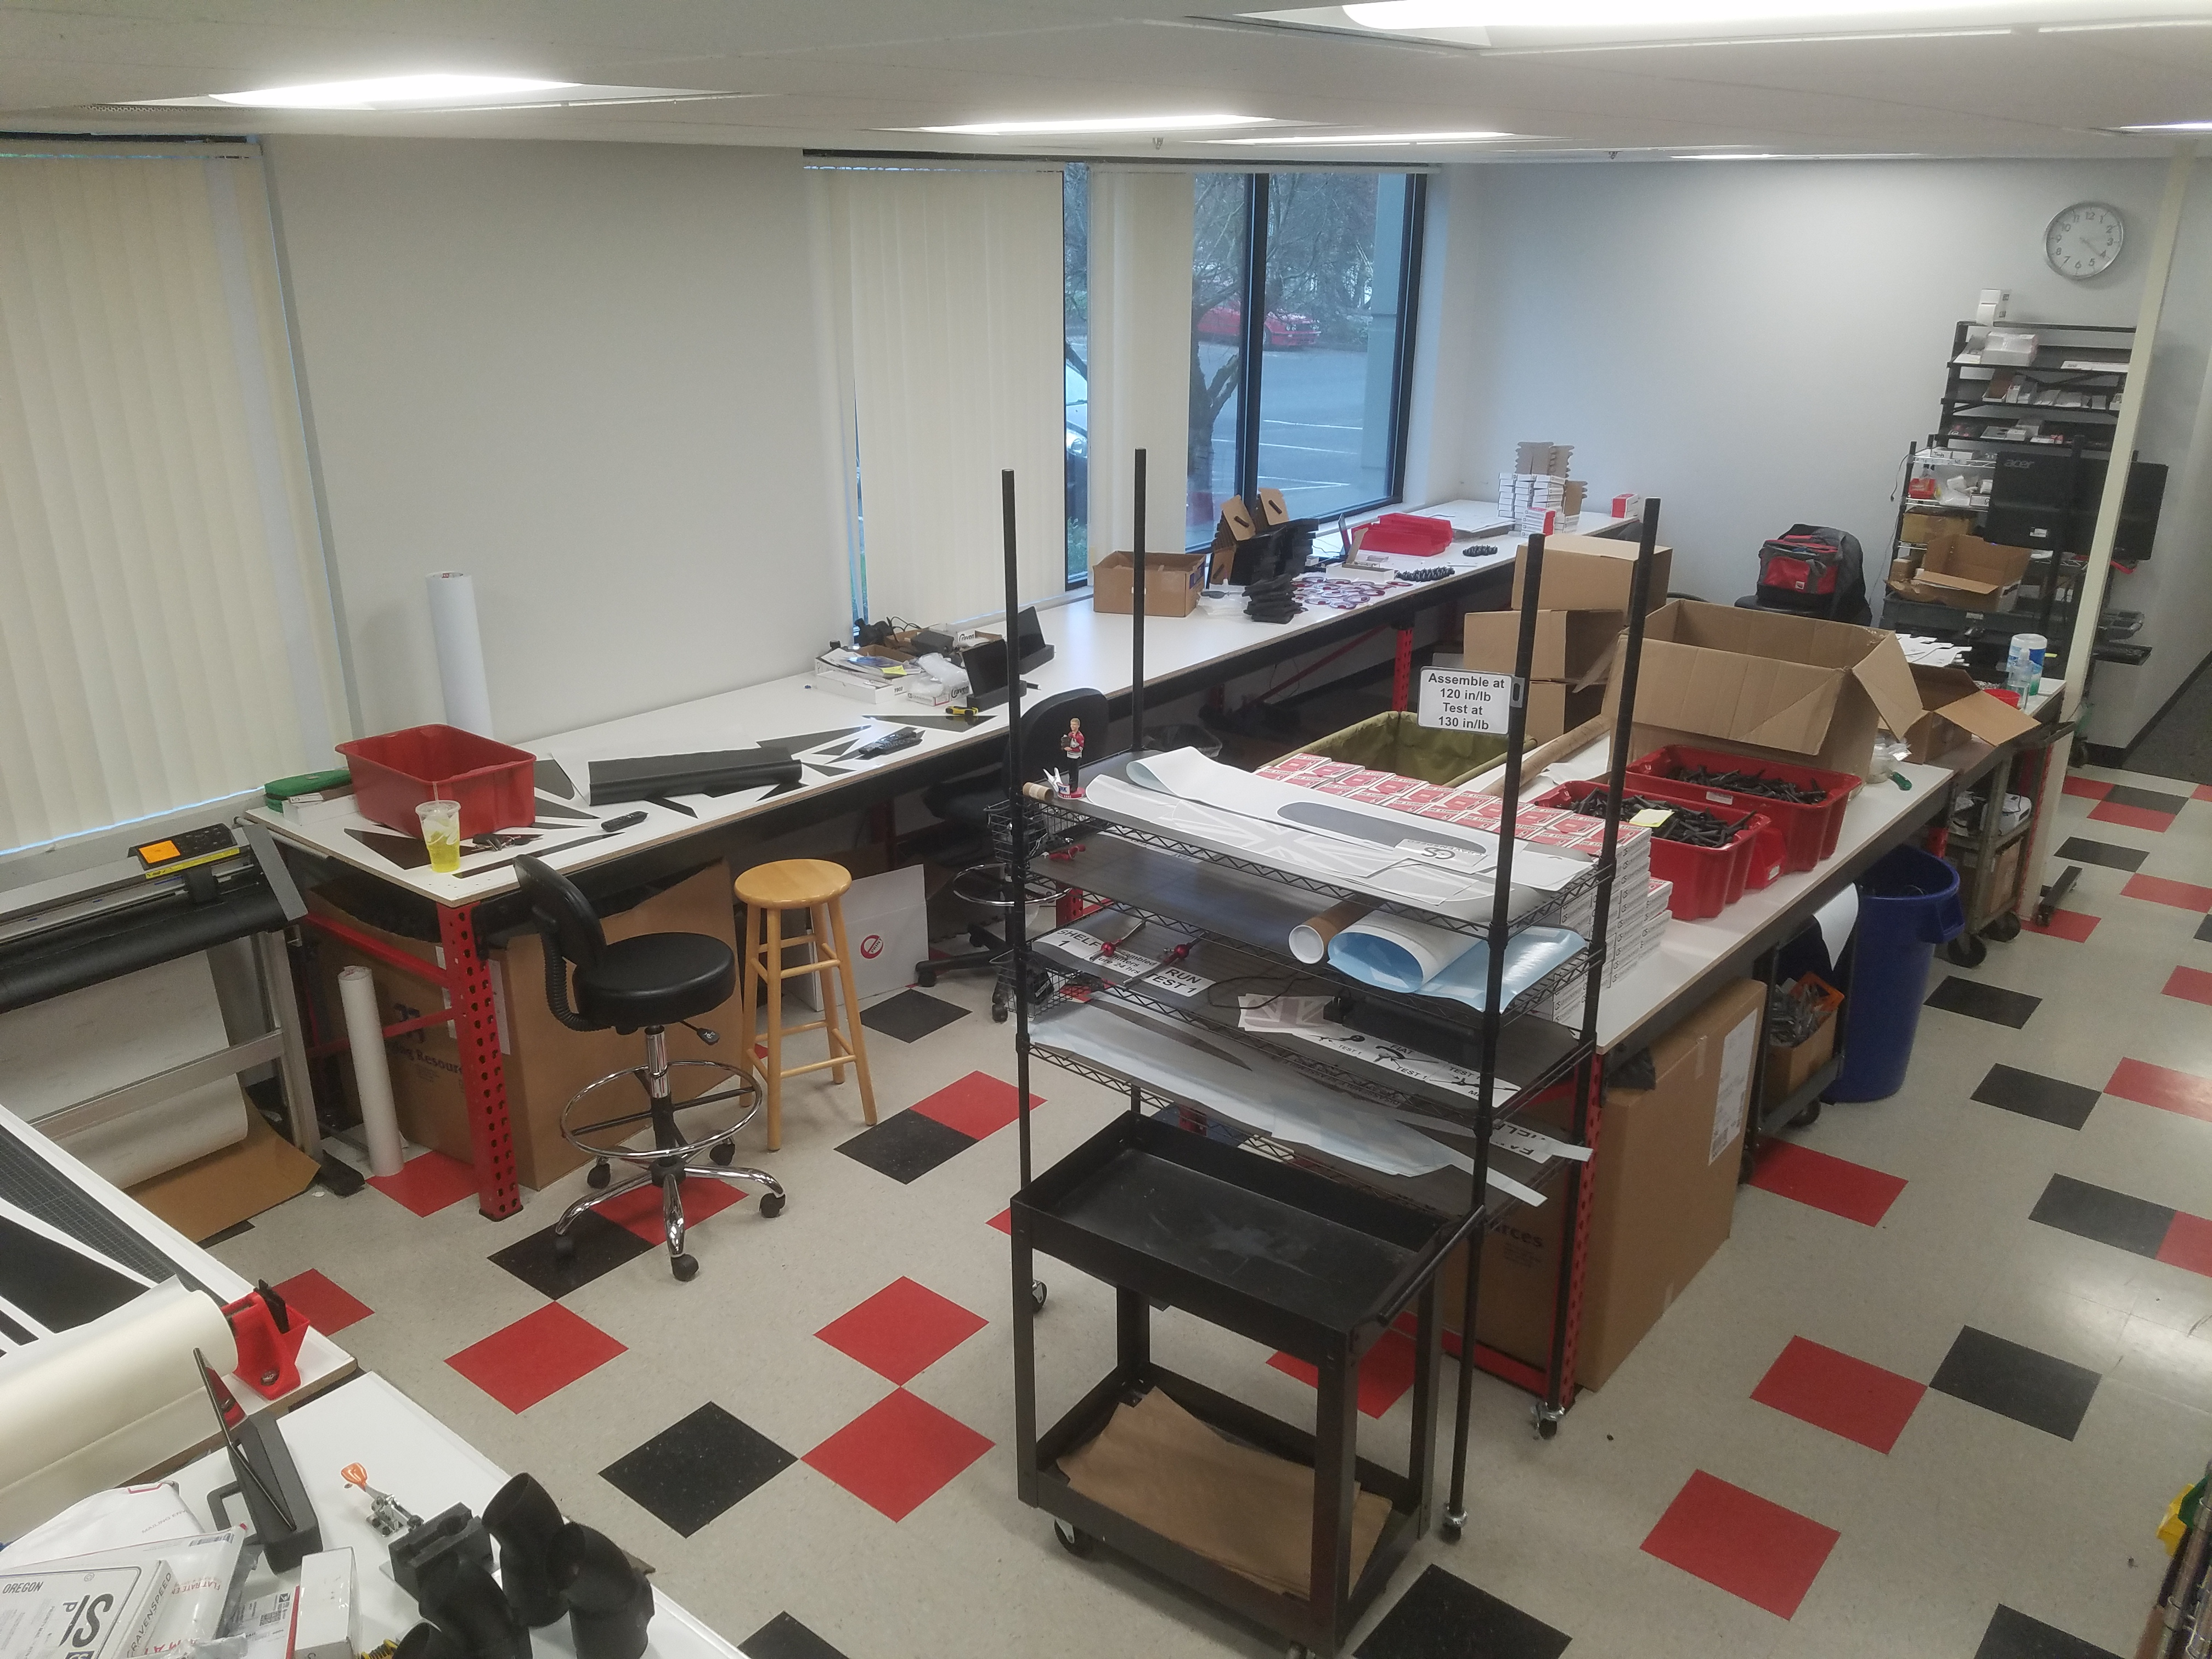 The CravenSpeed product assembly area, with new tables